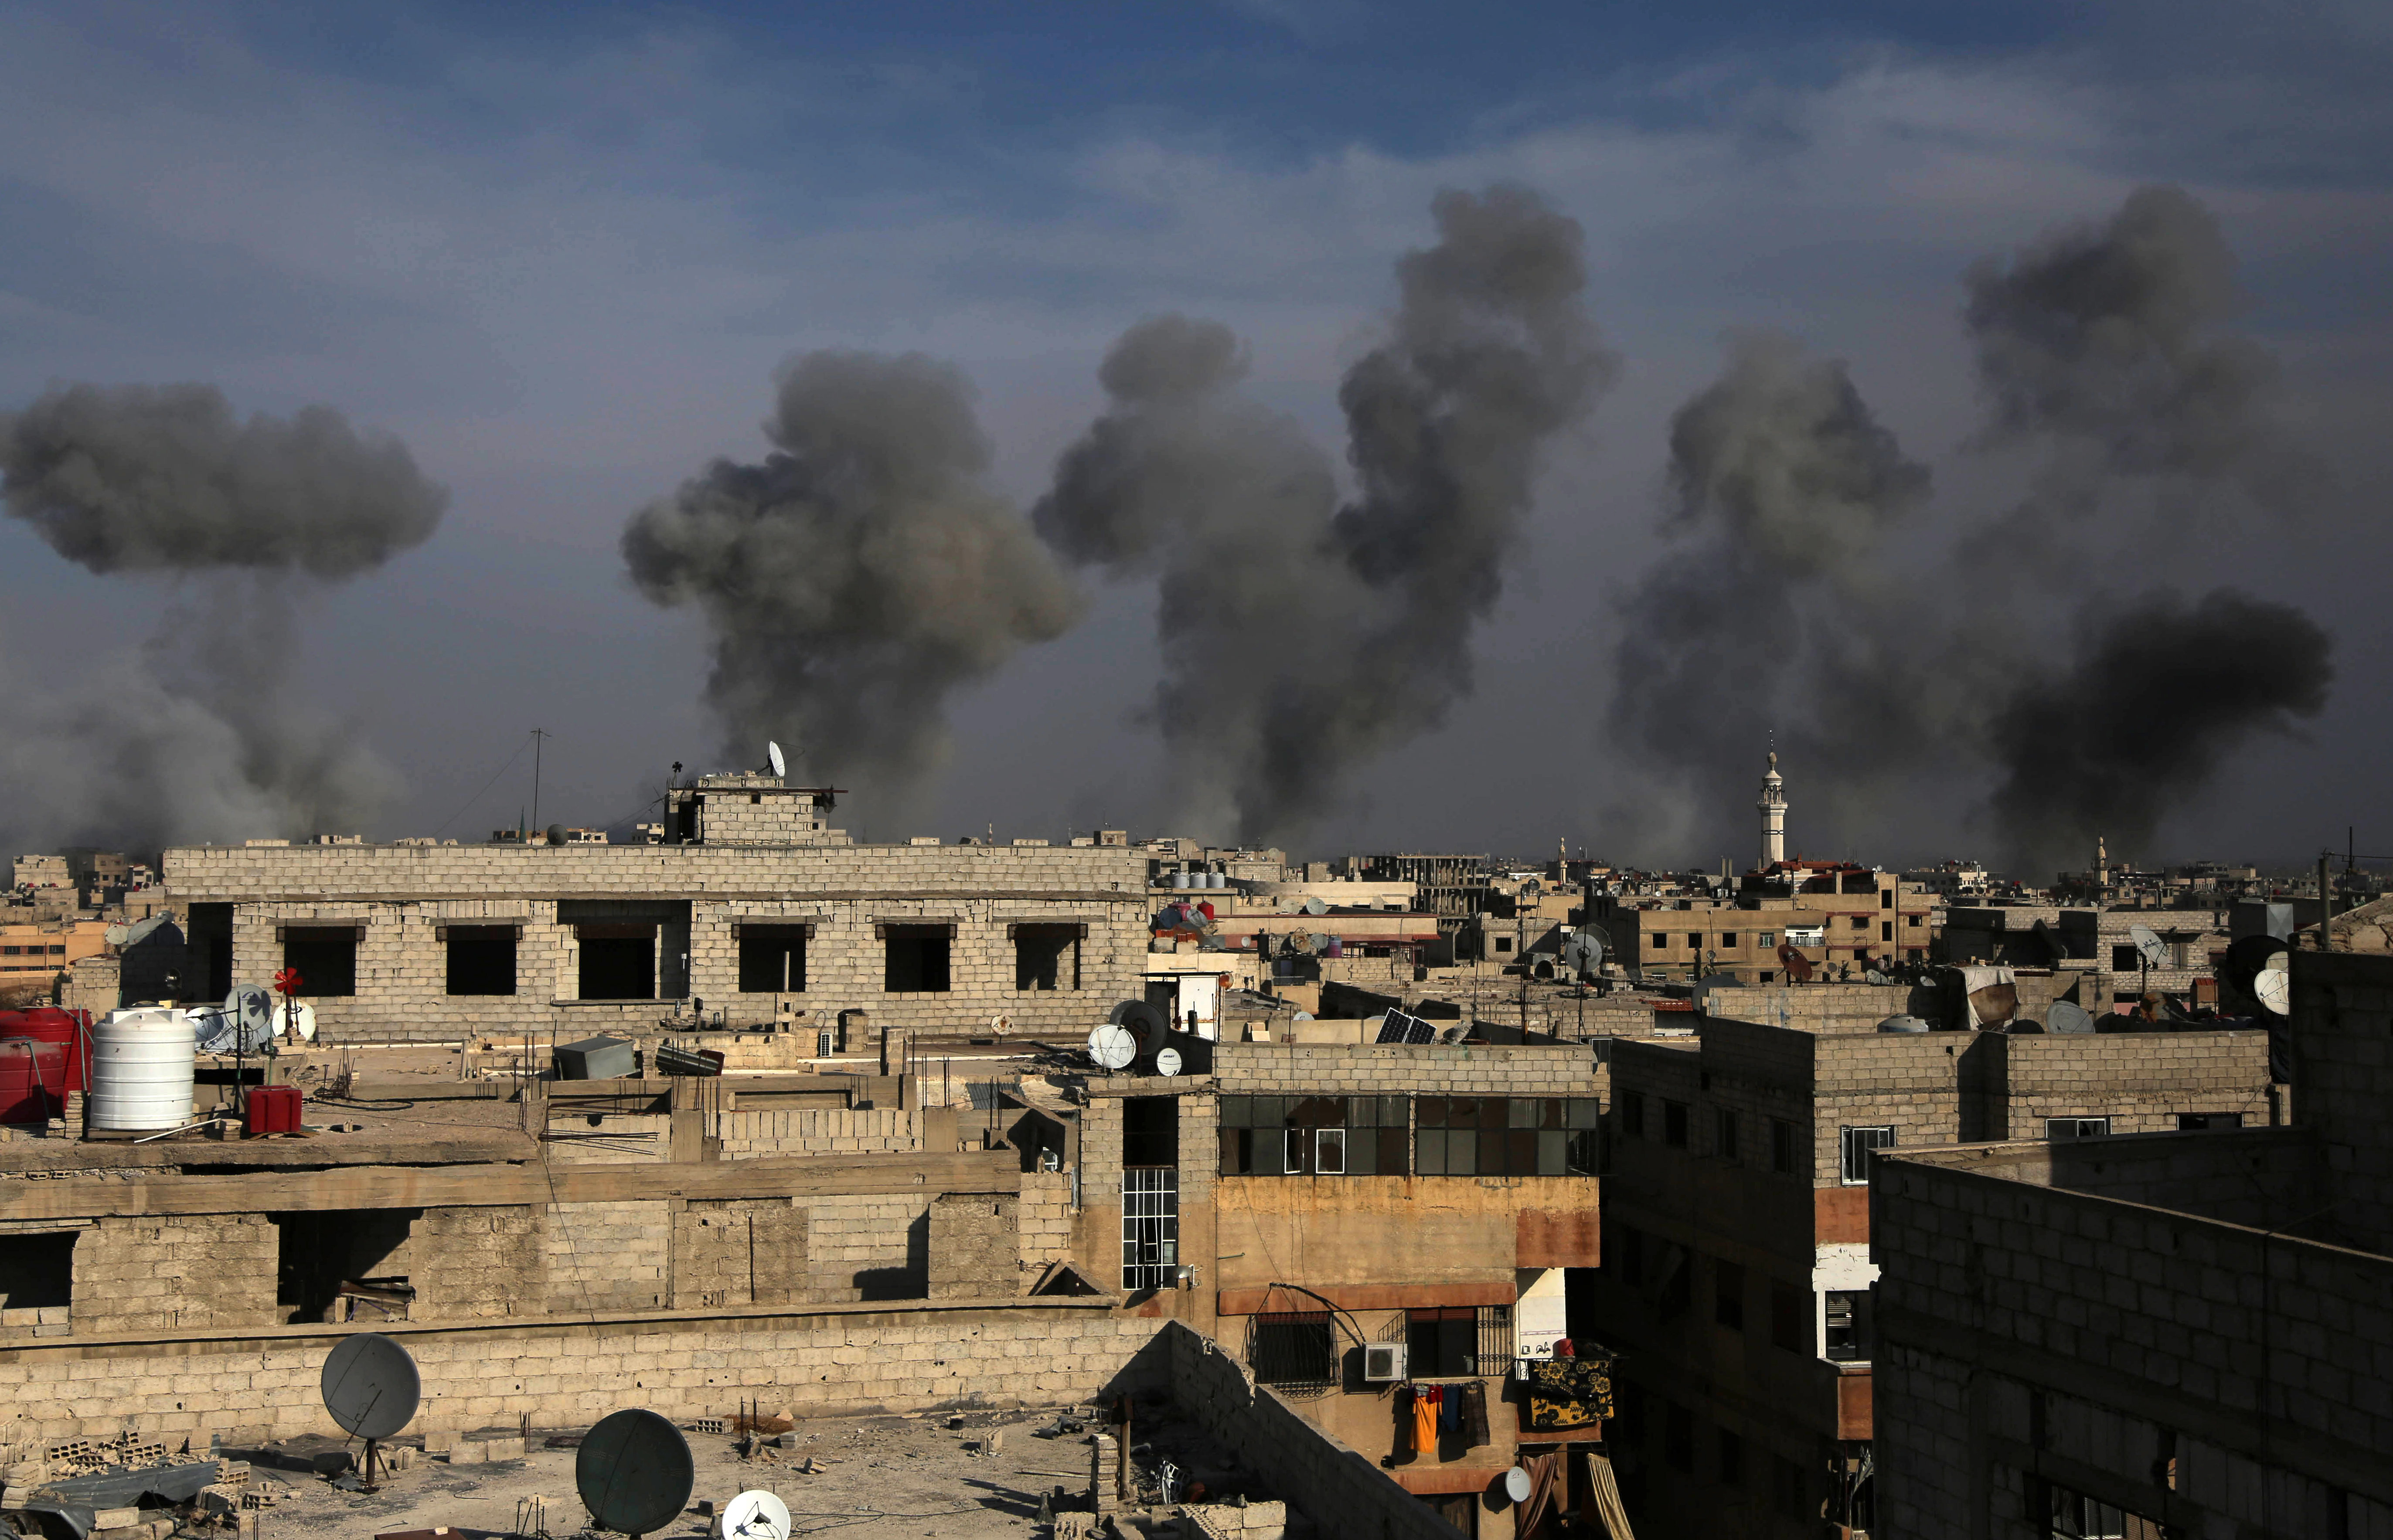 Smoke billows after air strikes by regime forces on the town of Douma in the eastern Ghouta region, a rebel stronghold east of the capital Damascus, on December 13, 2015